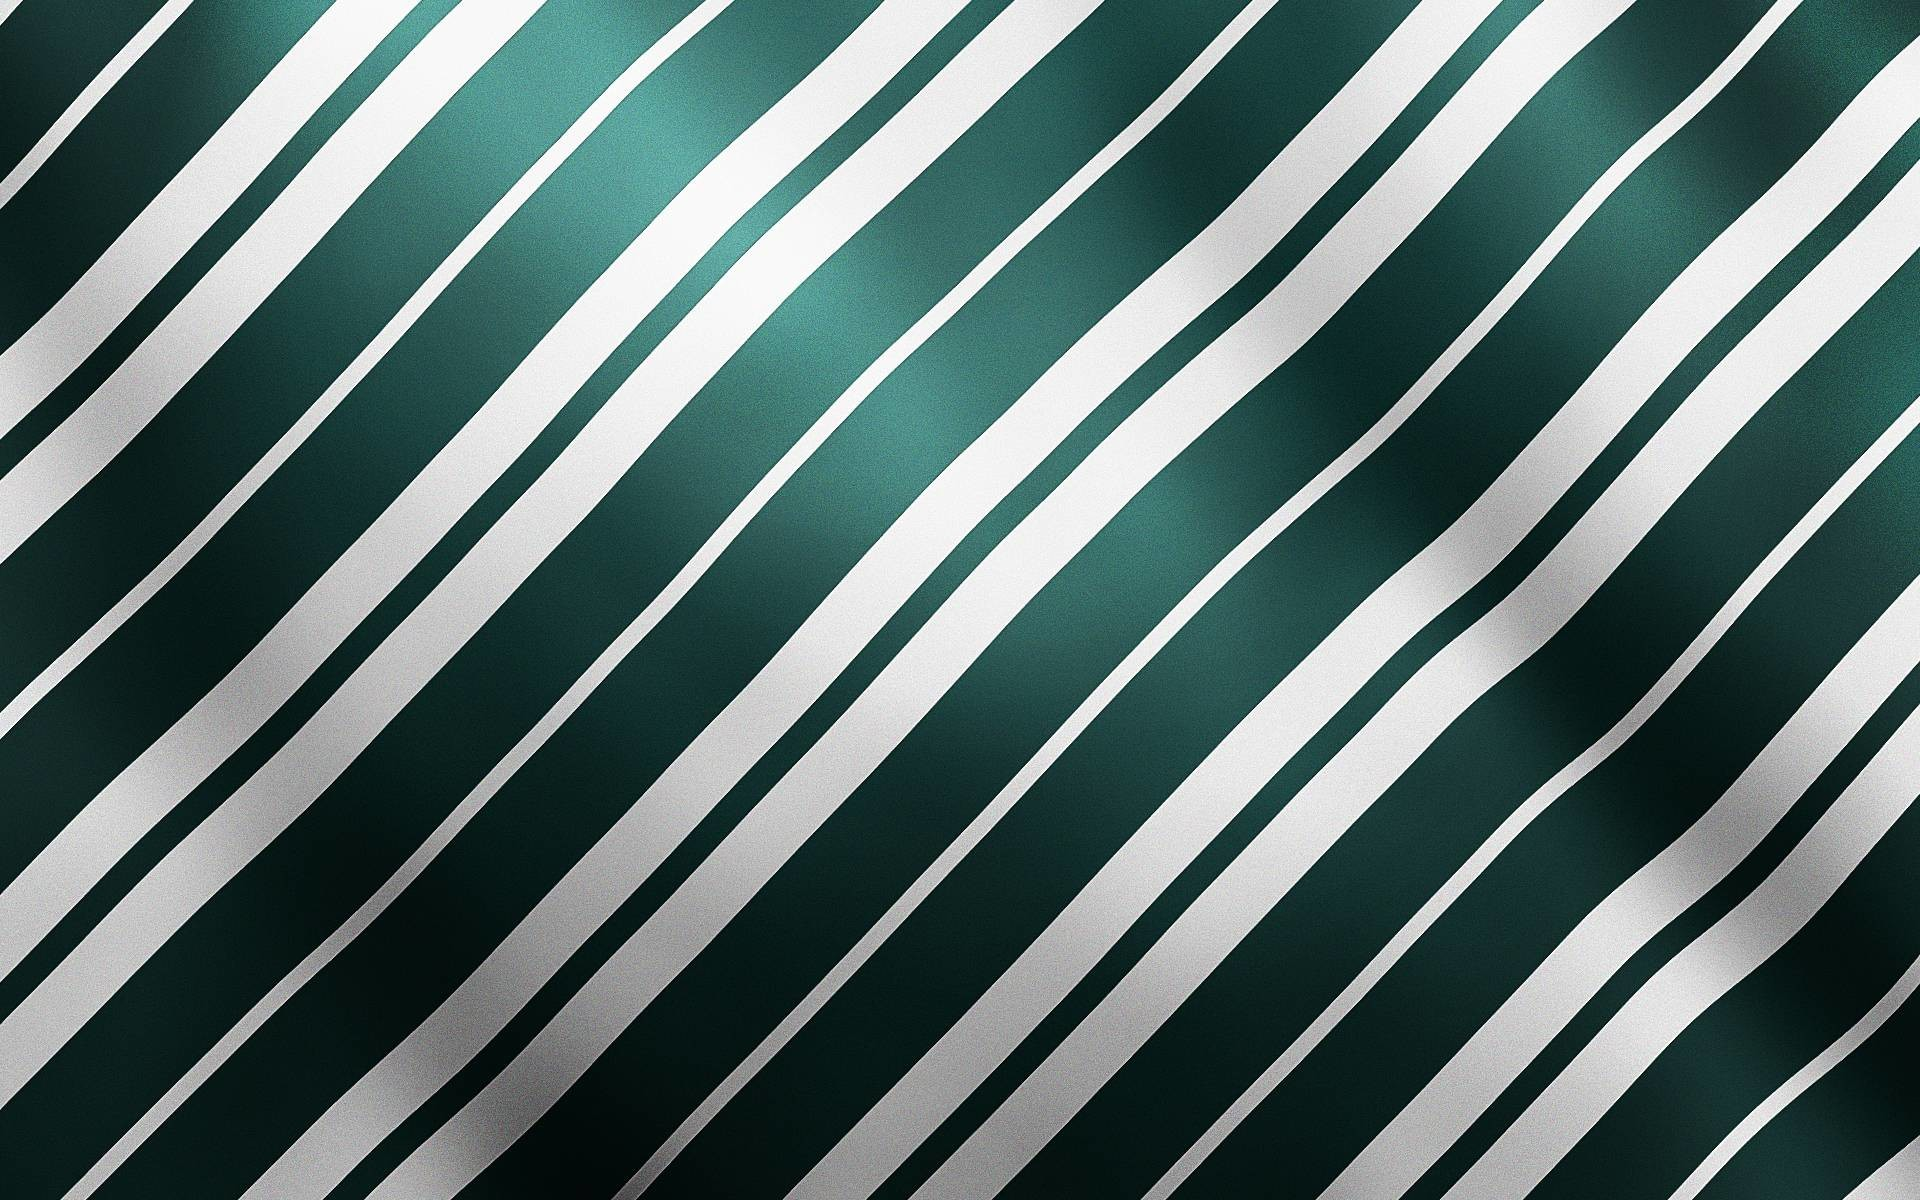 Abstract Wallpaper Set 58 | Awesome Wallpapers